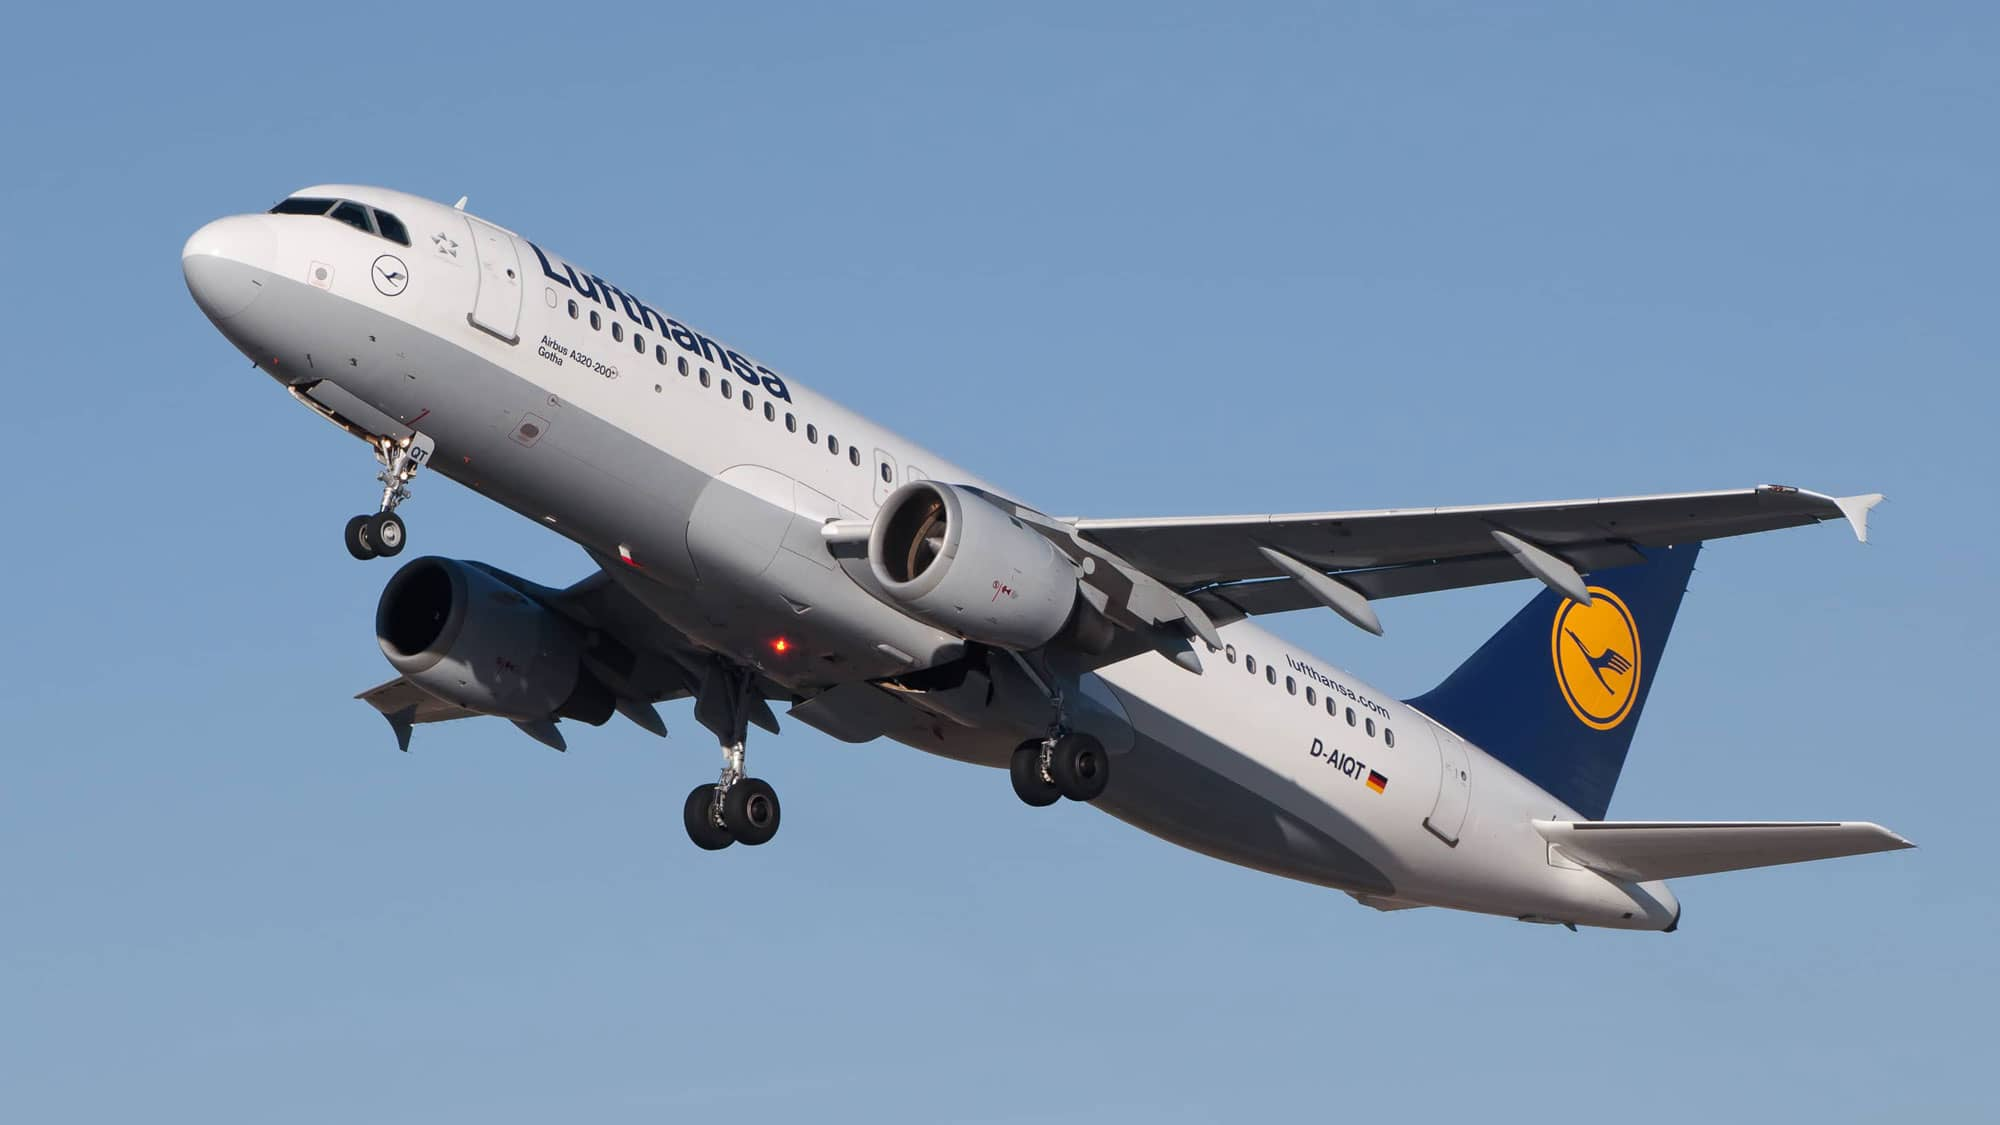 Airbus A320 - Photo from Wikimedia